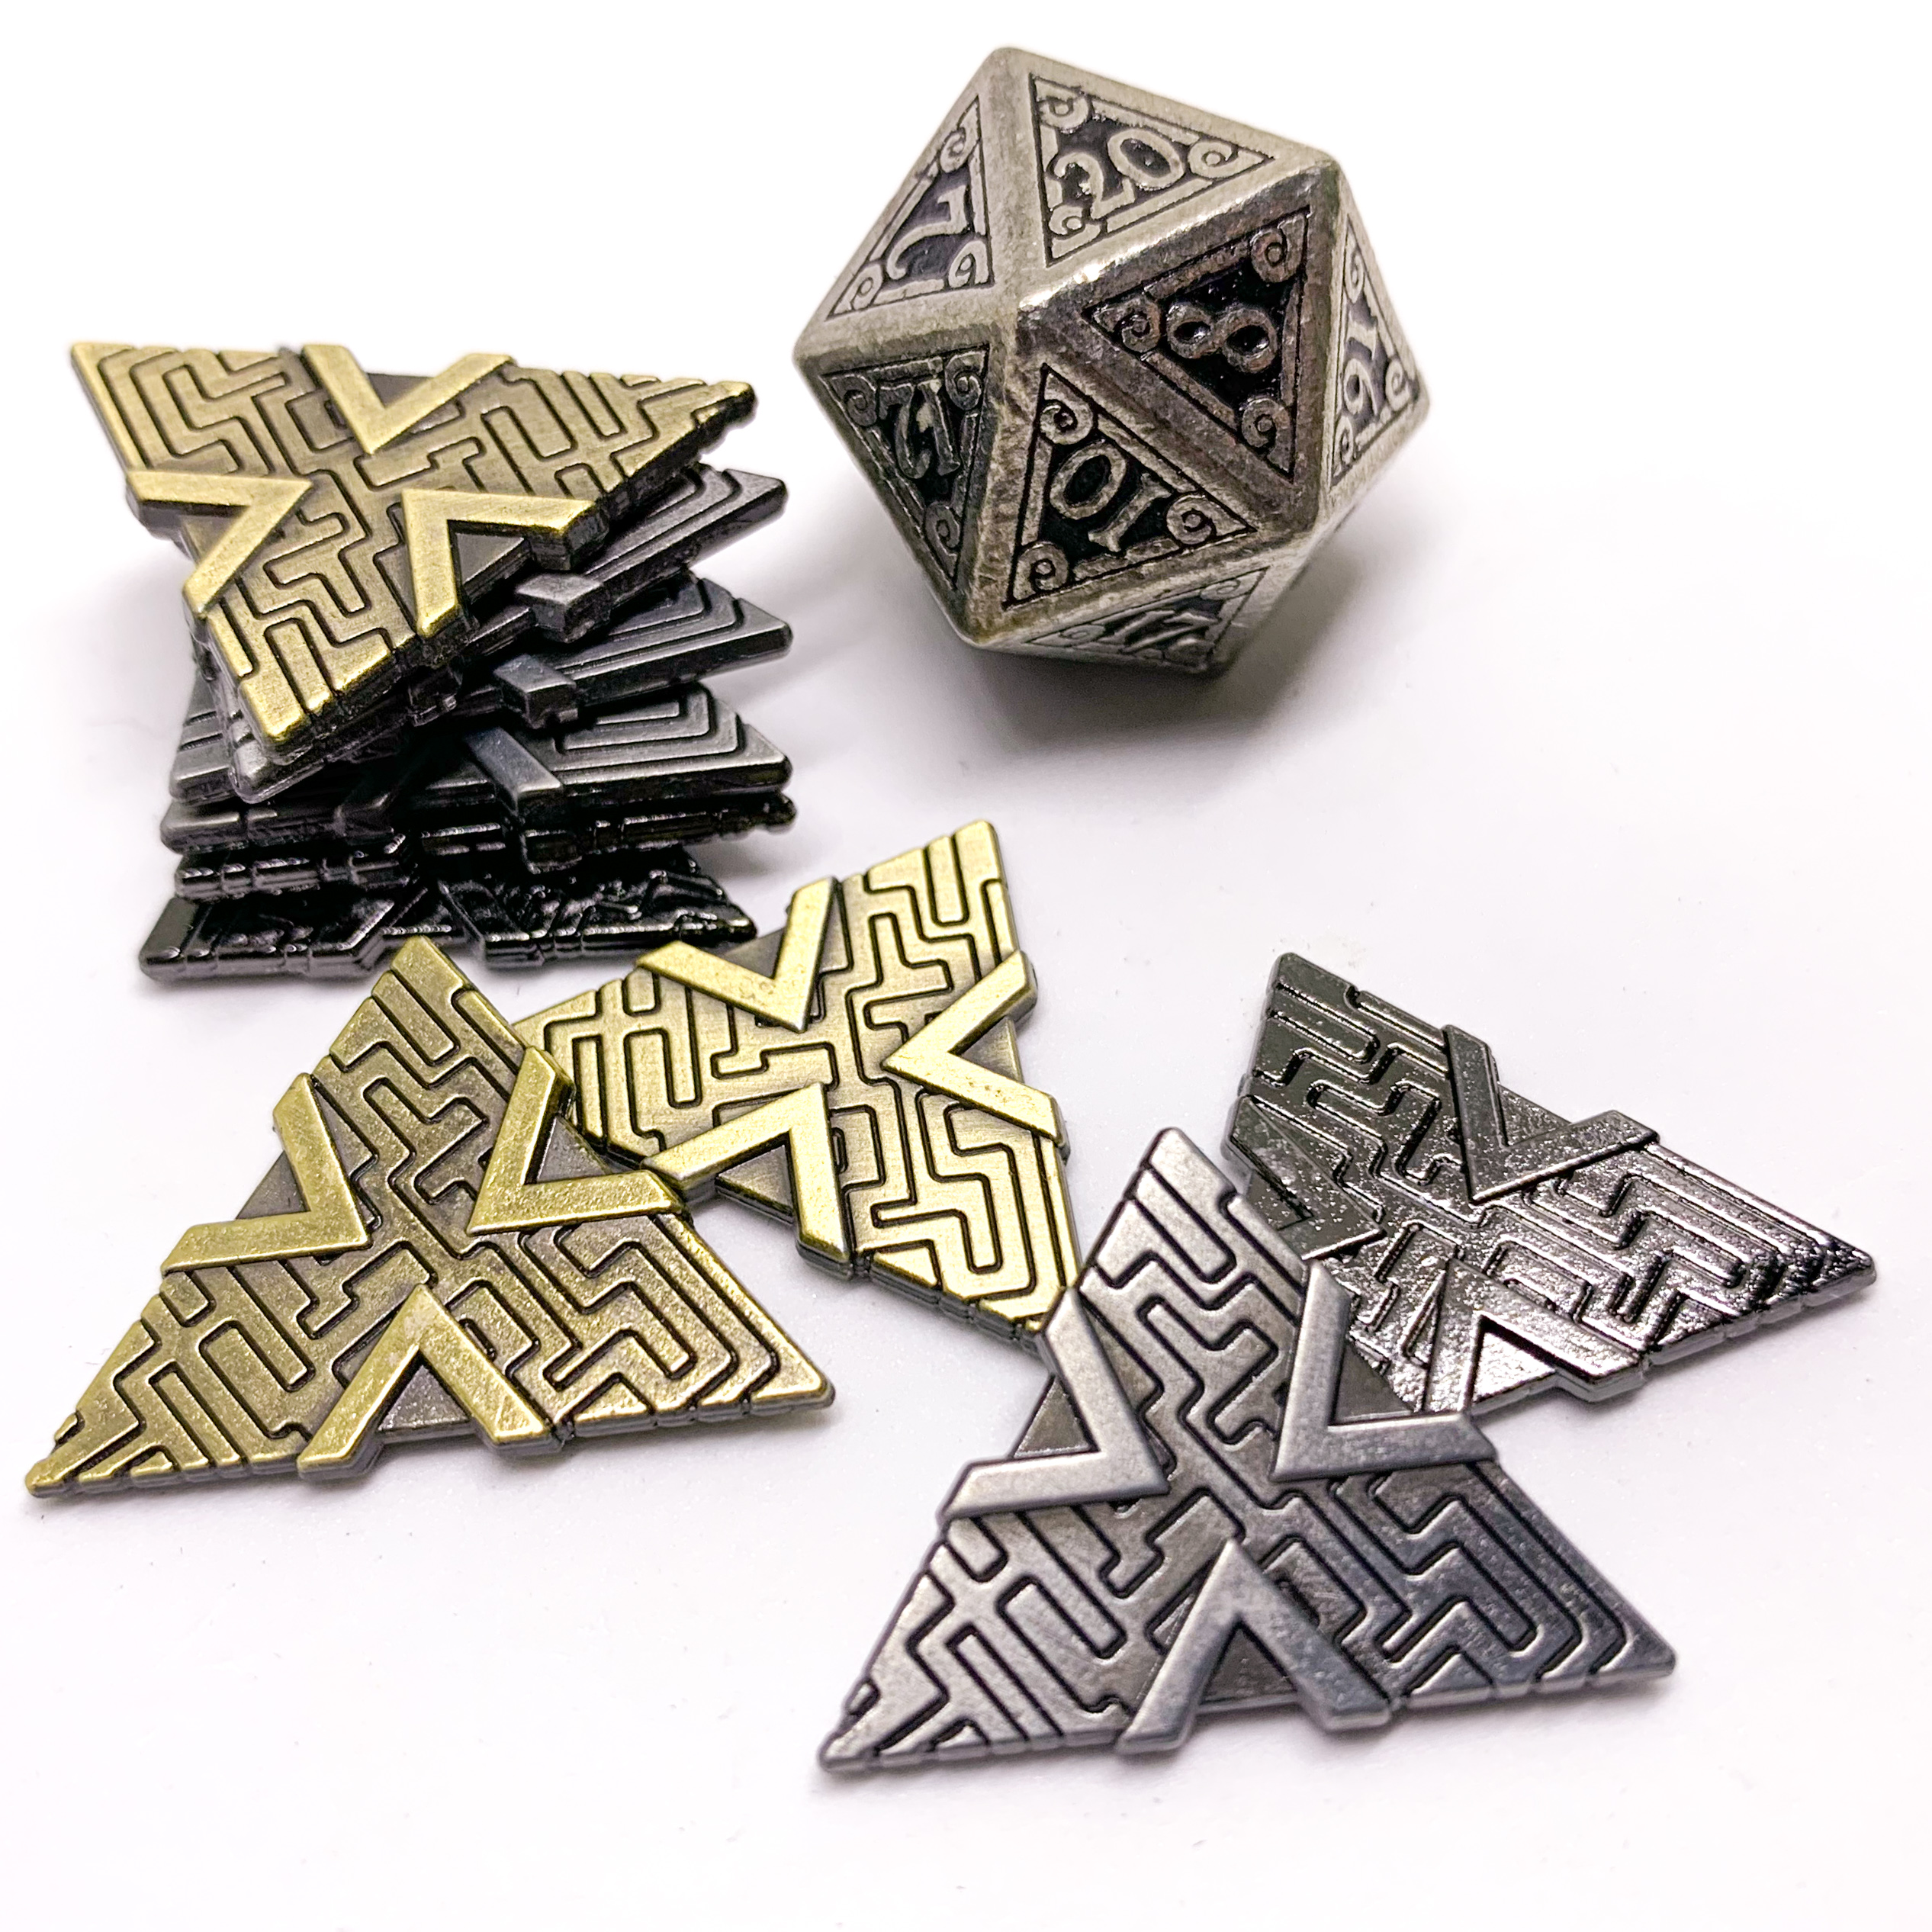 Campaign Coins - Numenera Shims type 3